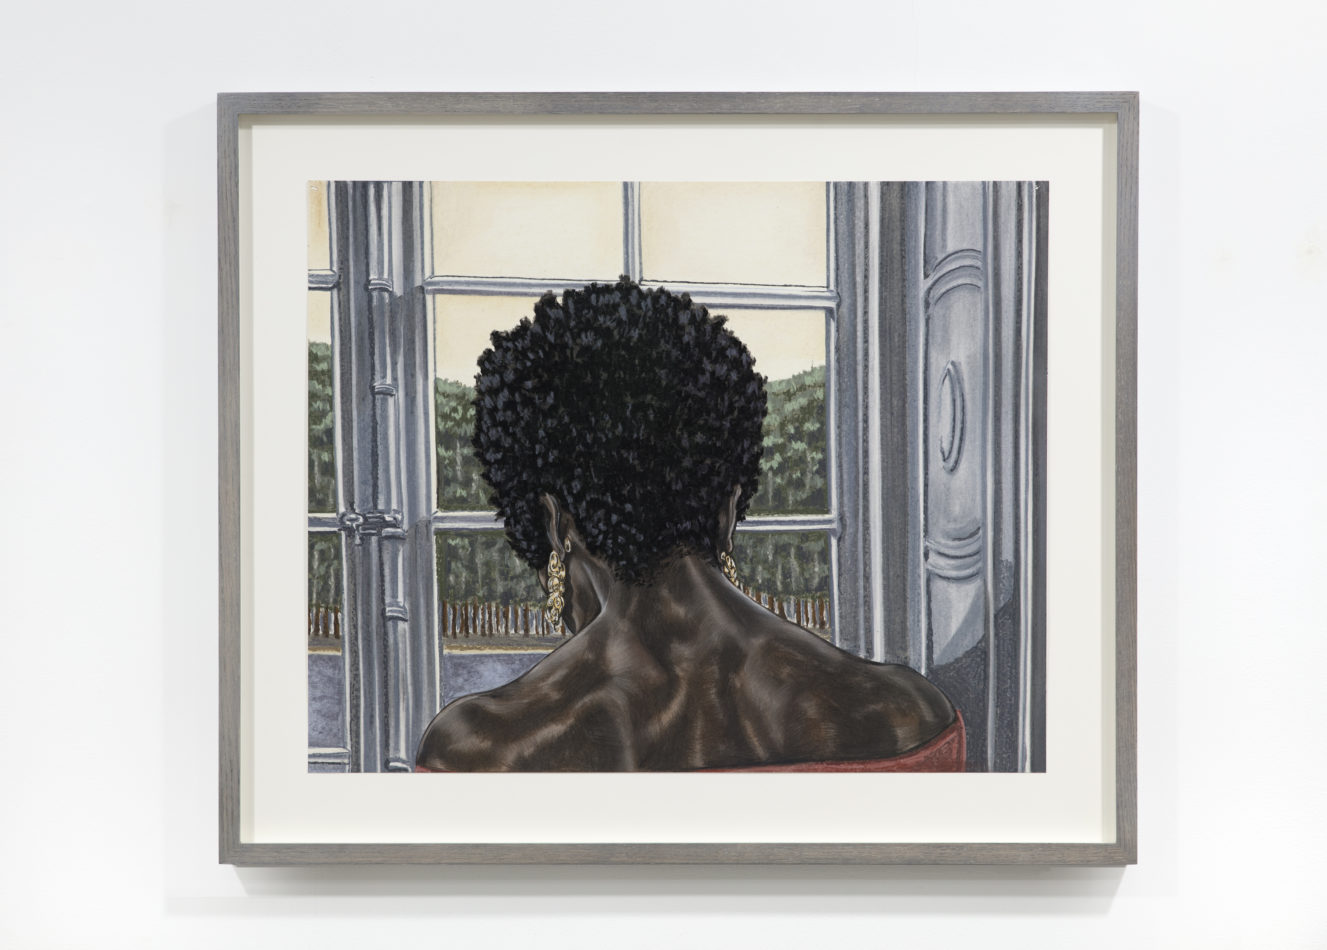 Toyin Ojih Odutola The Second Hour 2018 Charcoal, pastel and pencil on paper 19 x 24 inches Courtesy of the artist and Jack Shainman Gallery